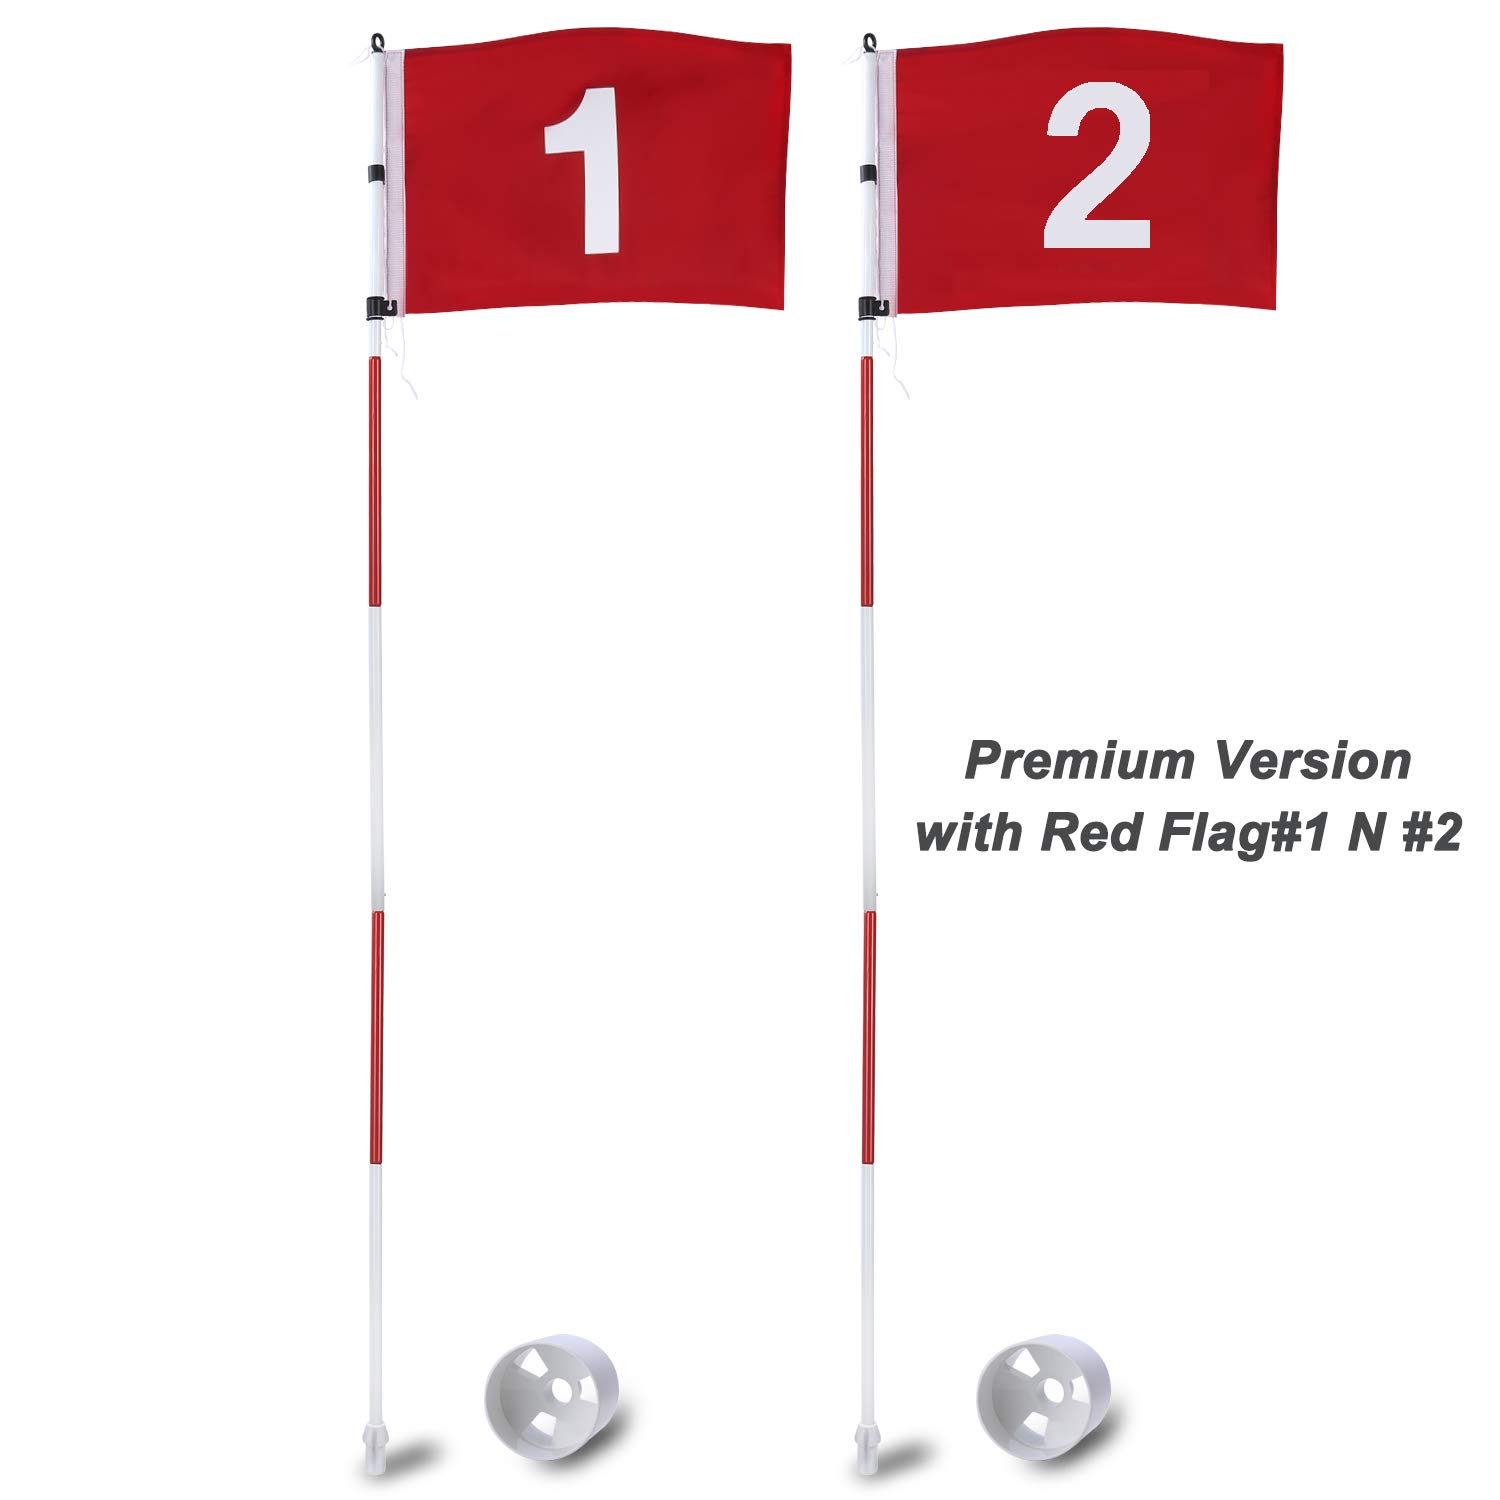 KINGTOP Golf Flags Stick, Practice Putting Green Flagstick Hole Cup Set, Golf Pin Flag for Driving Range/Backyard, Indoor/Outdoor, 5-Section Design, Solid Red Flag Numbered #1, 2, Both 71-inch, 2-Set